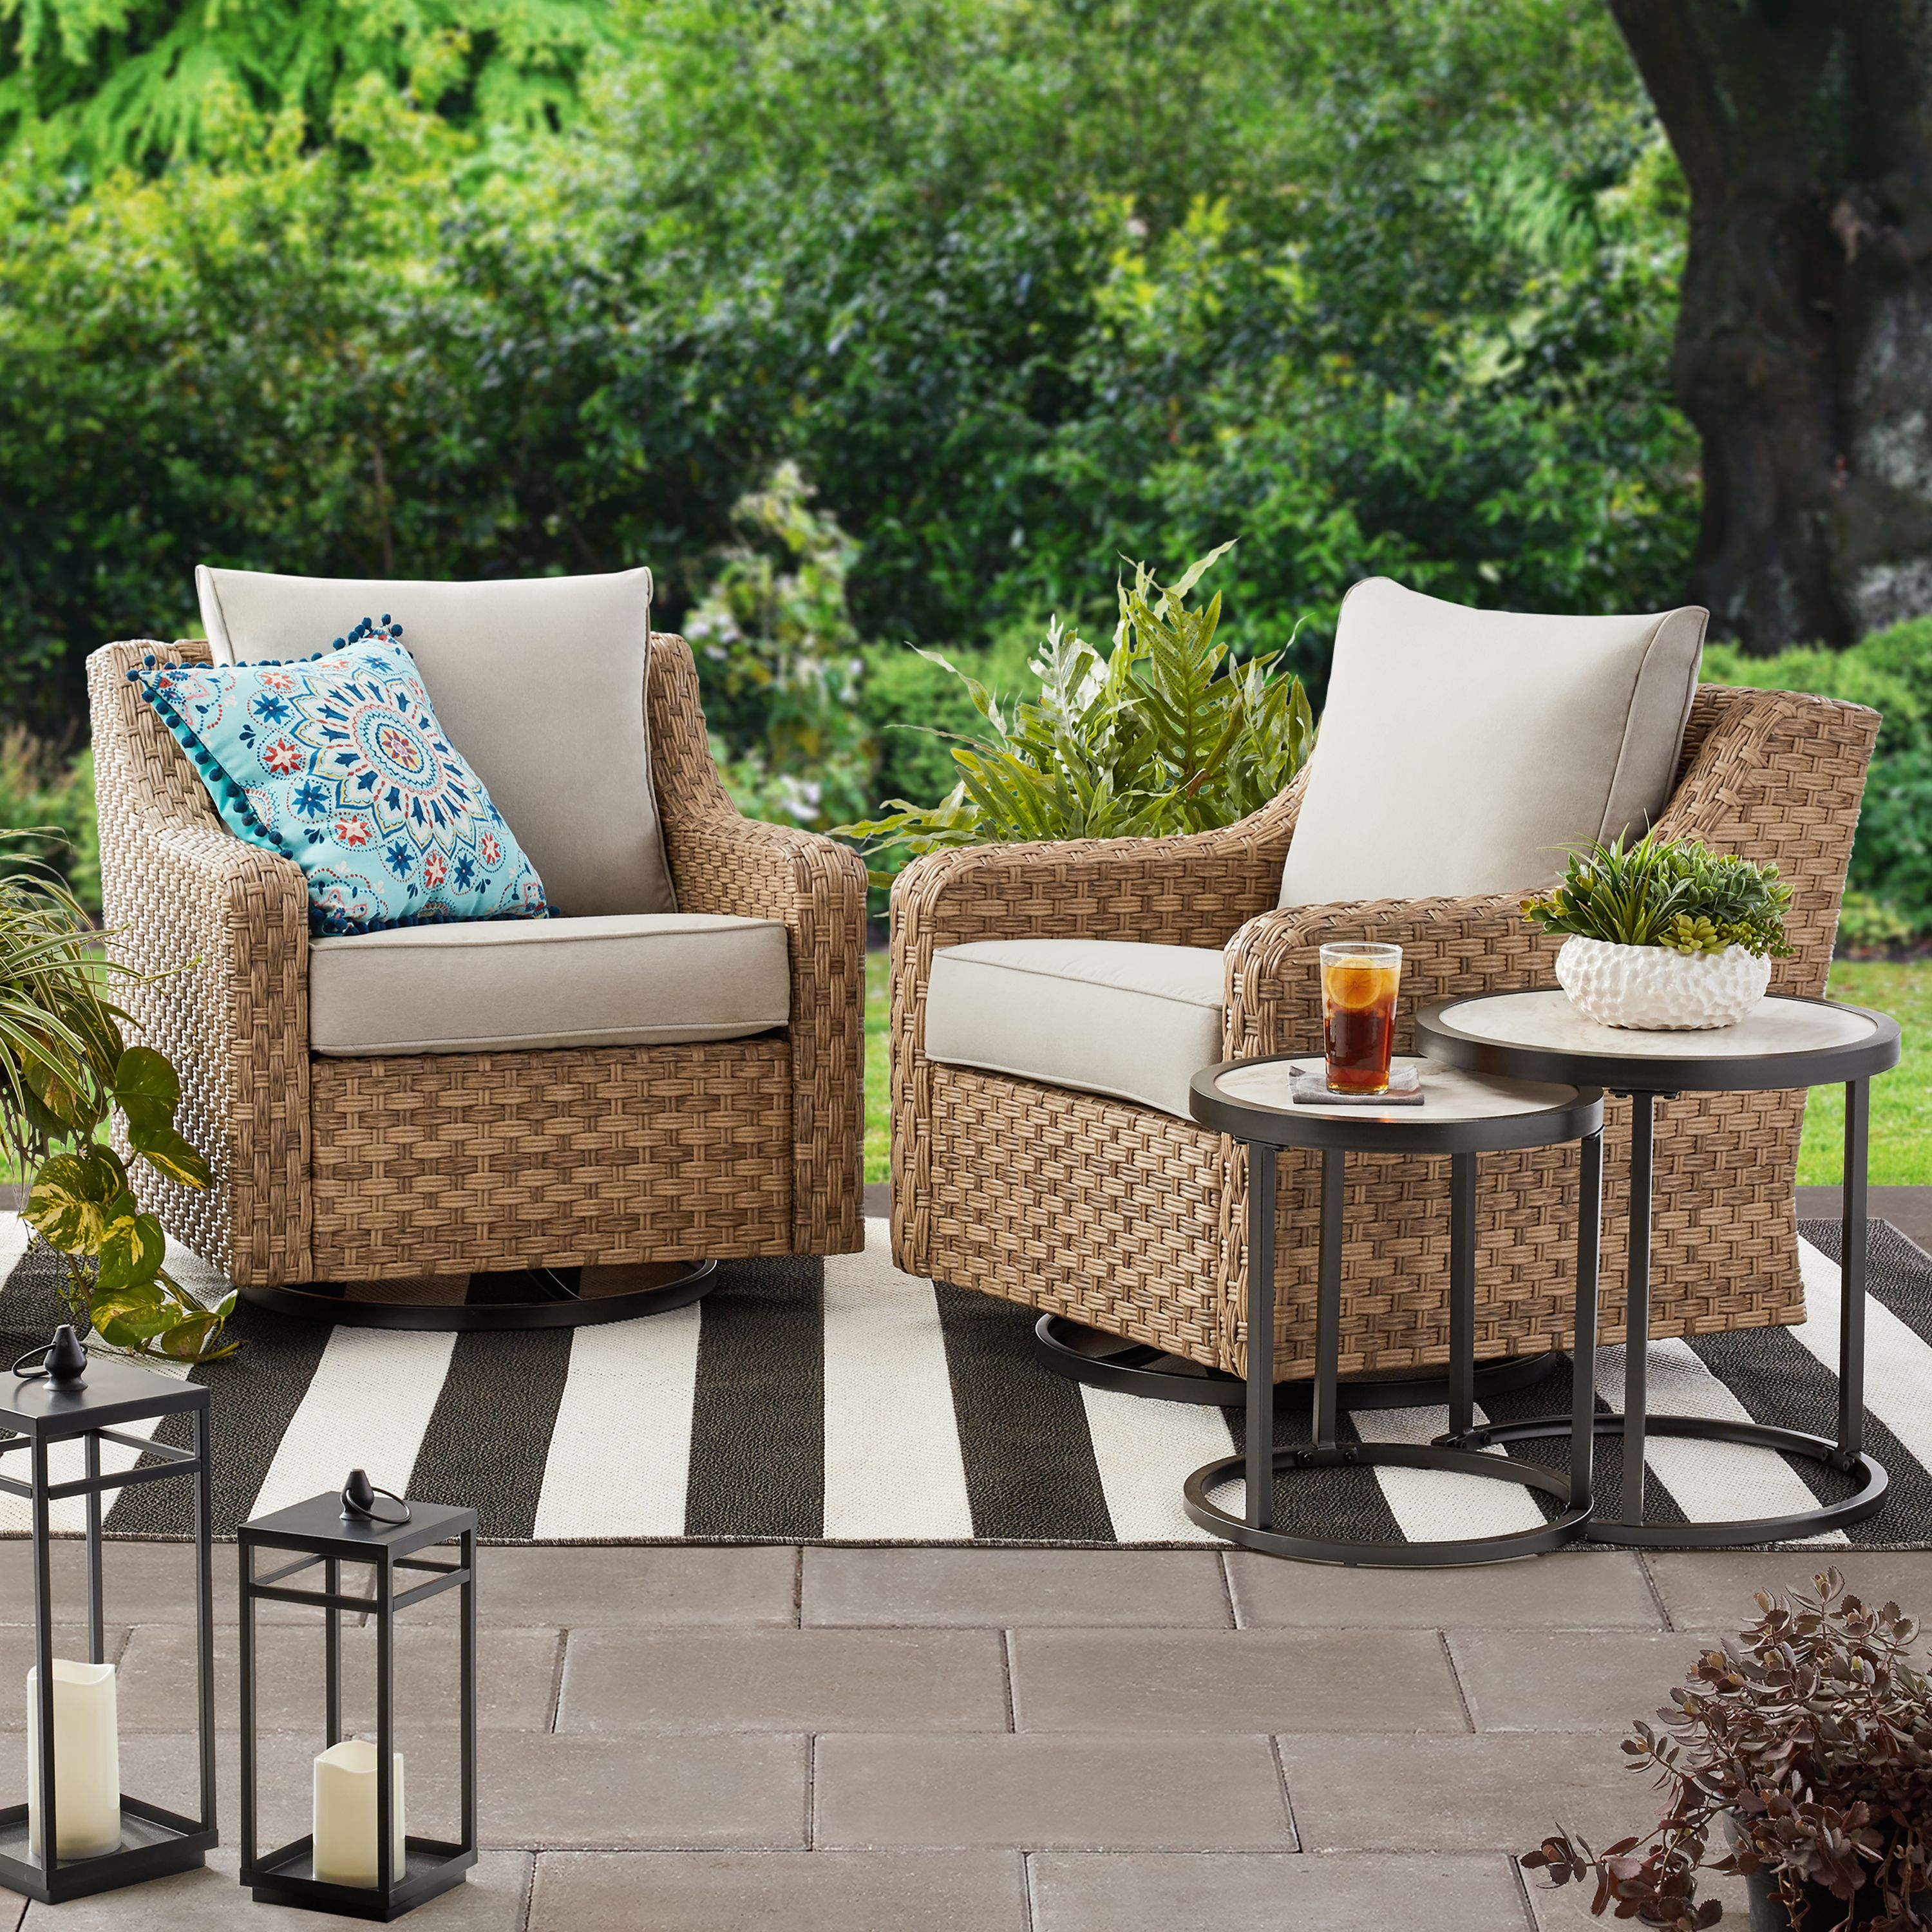 The Best Affordable Outdoor Swivel Chairs at Walmart